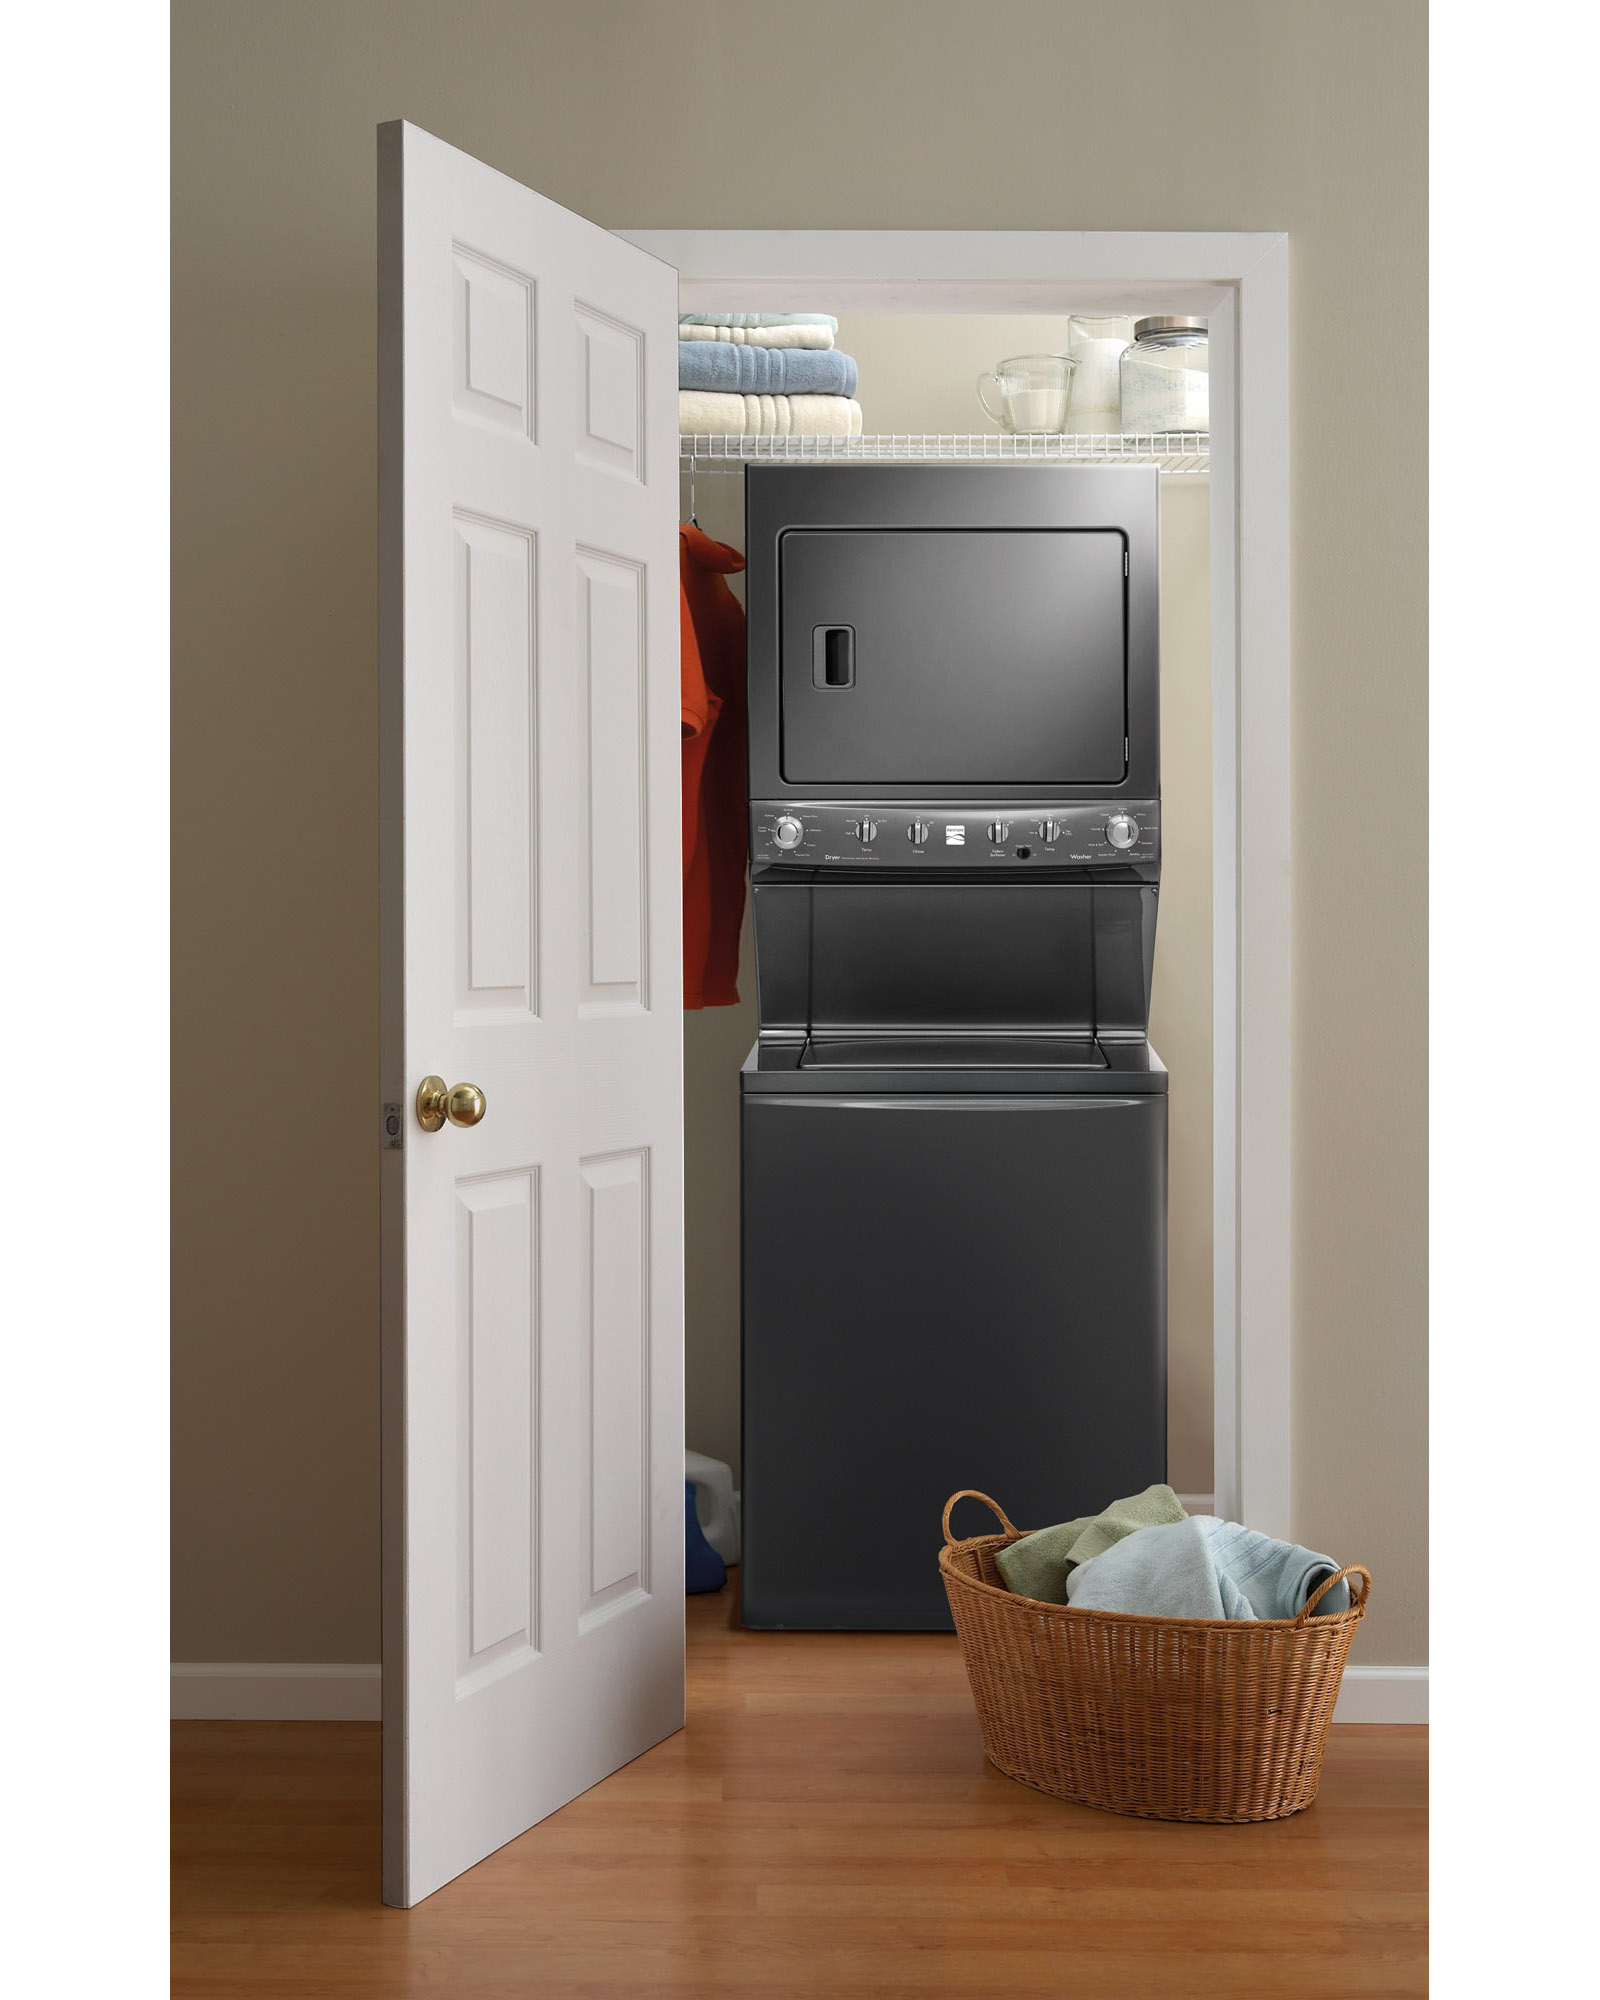 """Kenmore High Efficiency 27"""" Super Capacity 3.8 cu. ft. Electric Laundry Center - Metallic"""